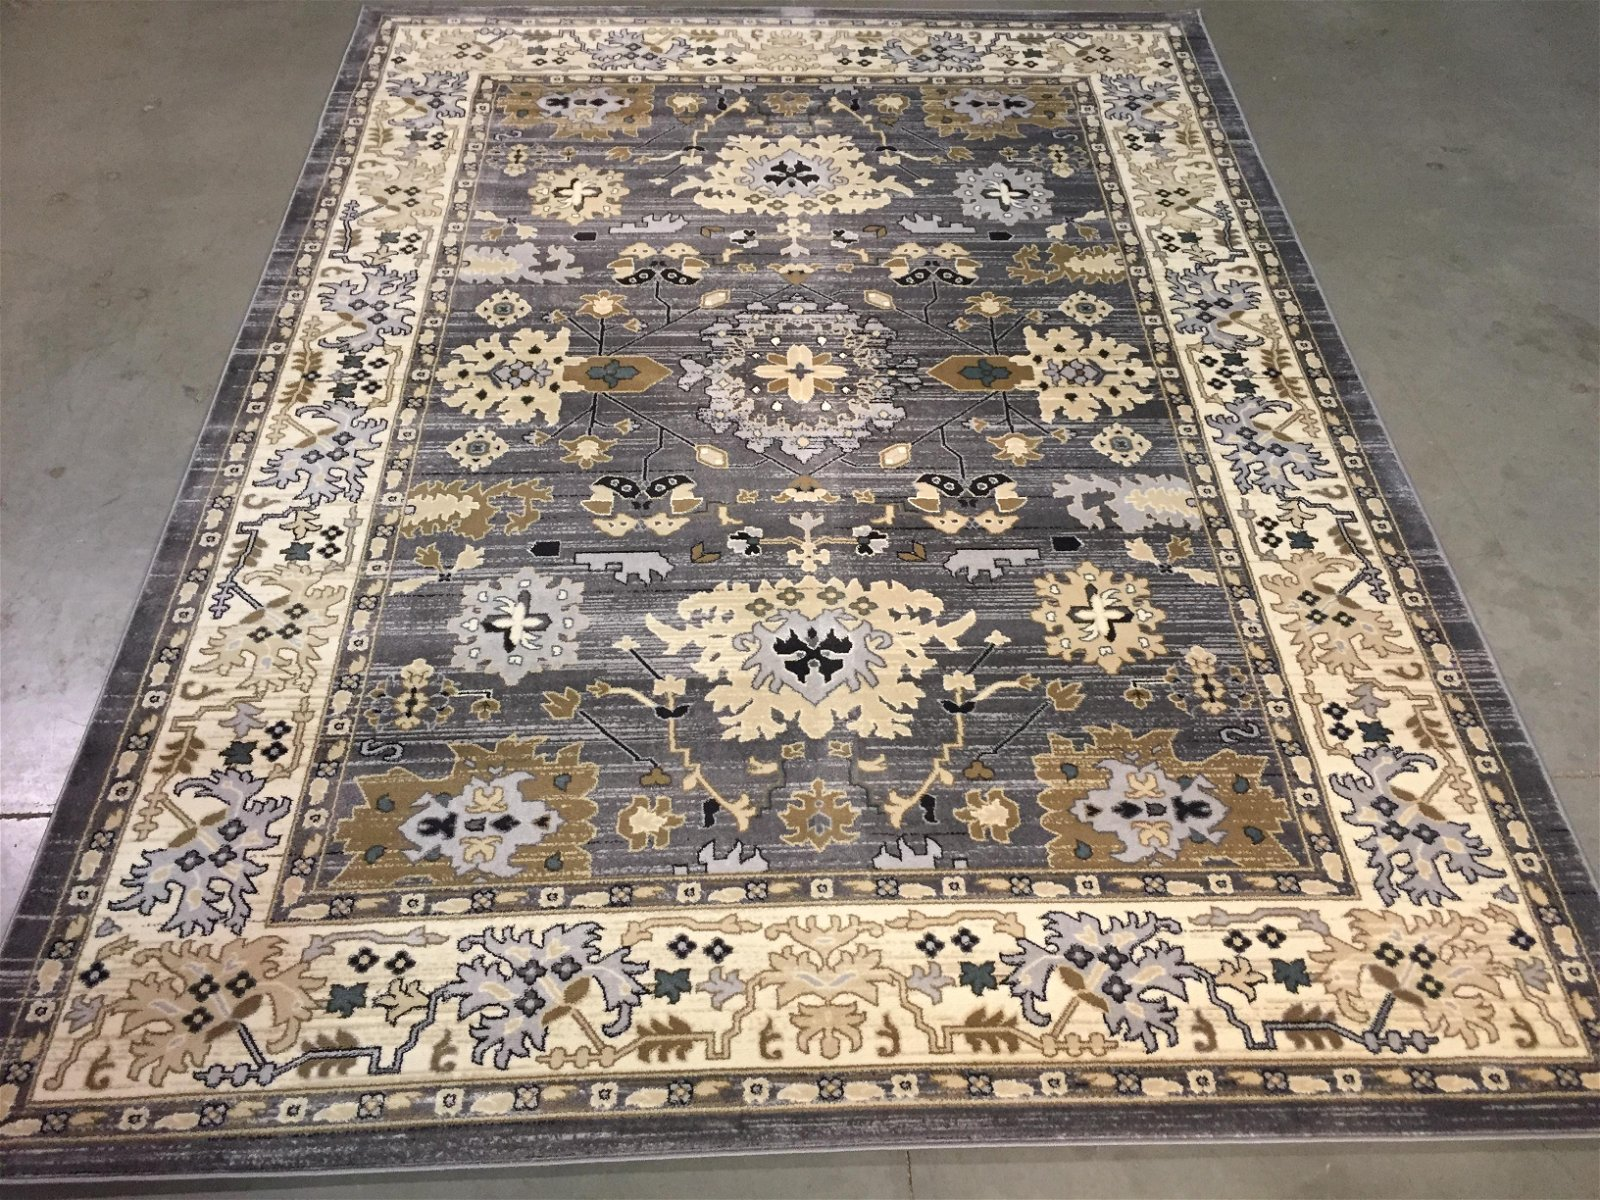 CLASSIC TURKISH GEOMETRIC DESIGN AREA RUG 8x11